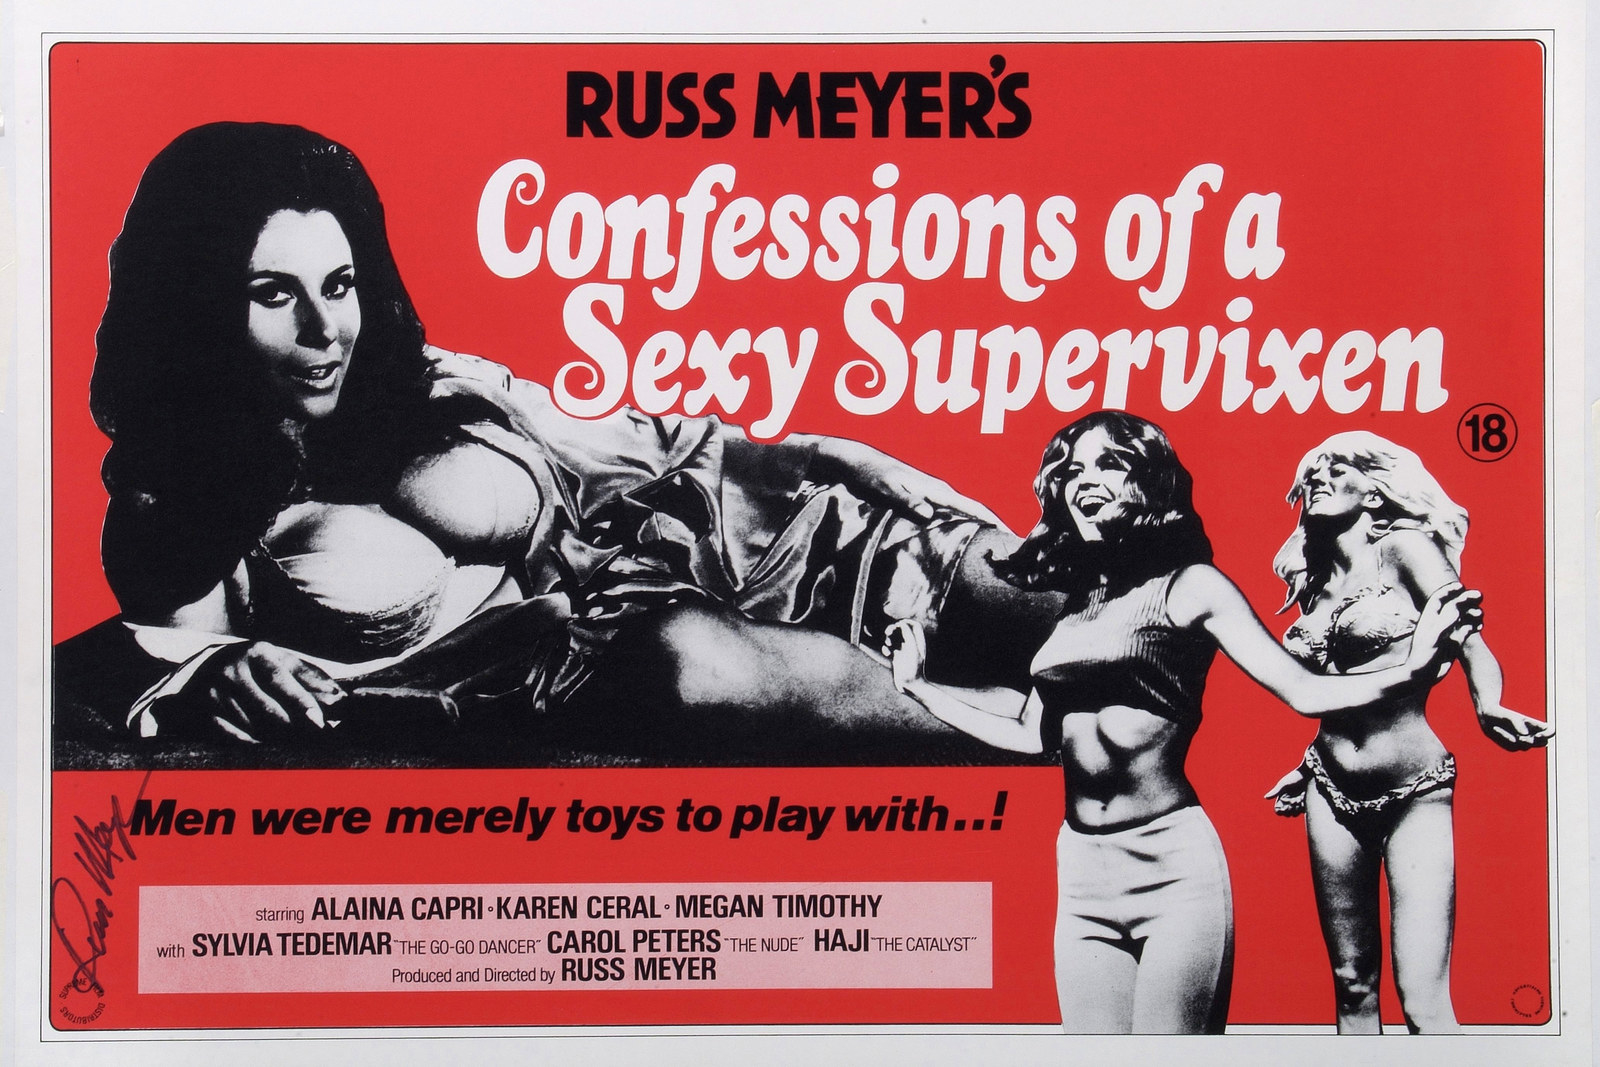 A poster for the pornographic film Confessions of a Sexy Supervixen, directed by Russ Meyer, in 1967.